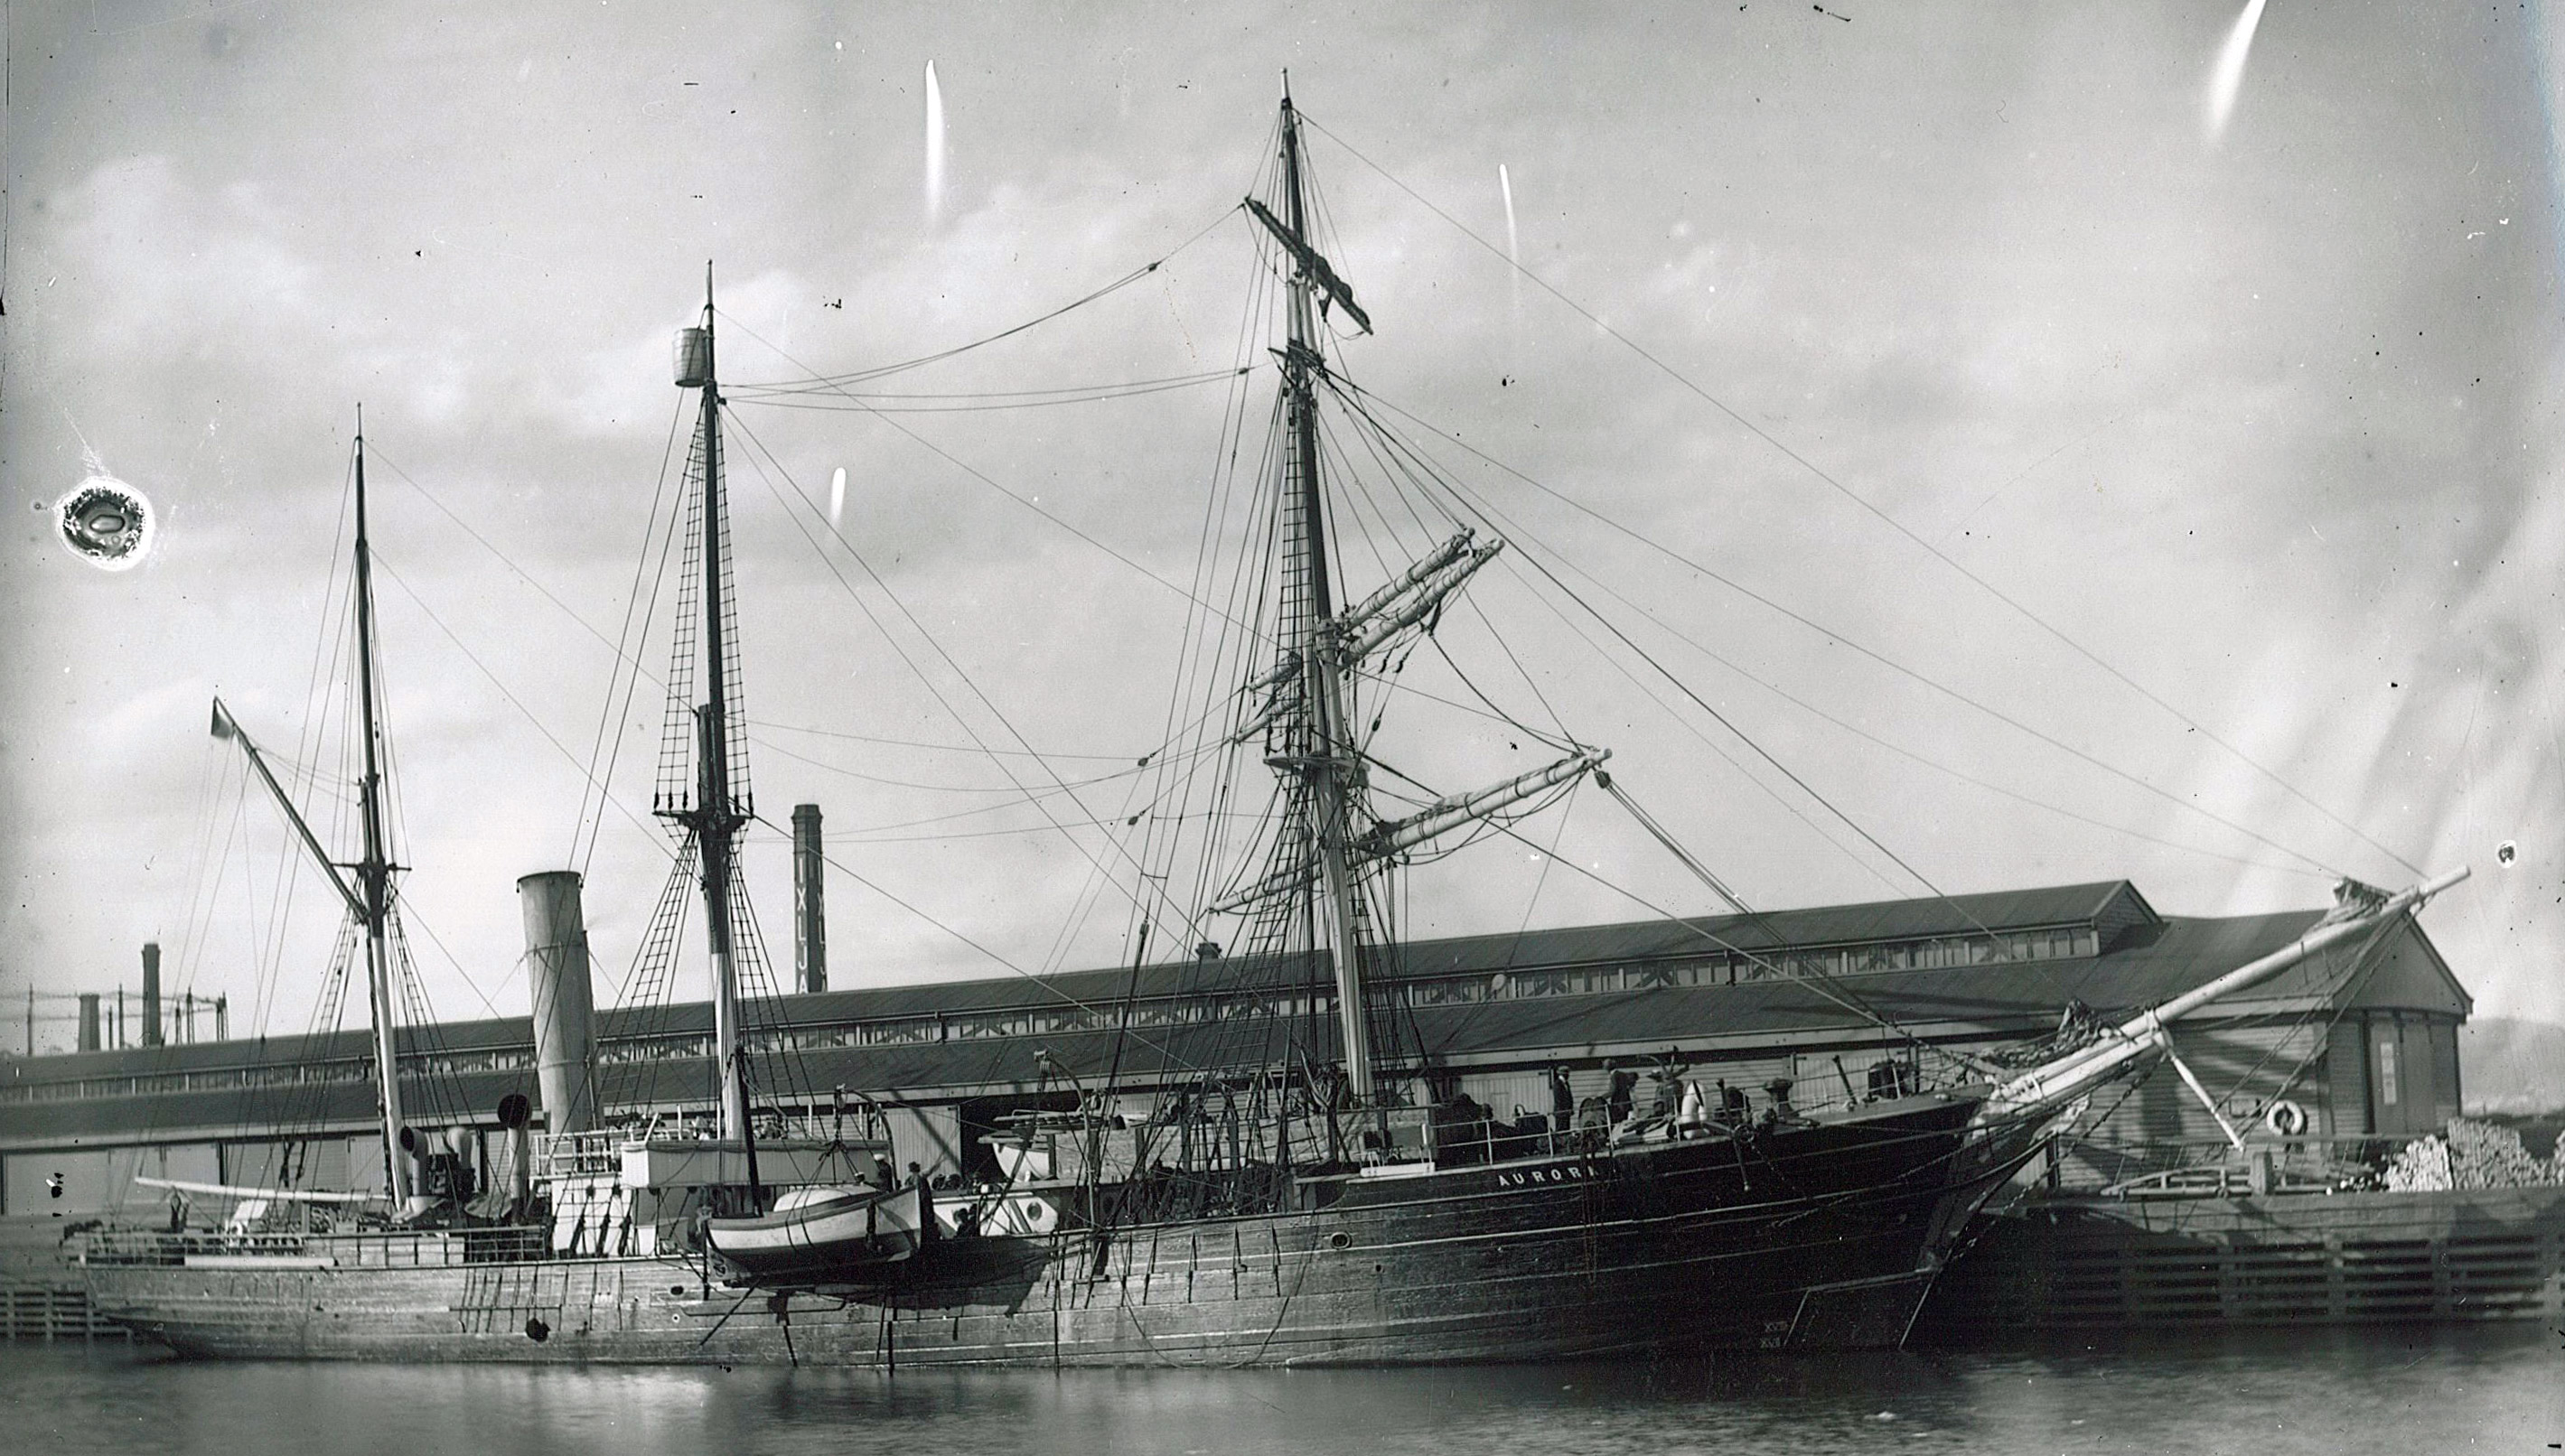 SY Aurora, Douglas Mawson - Ships of the Antarctic explorers